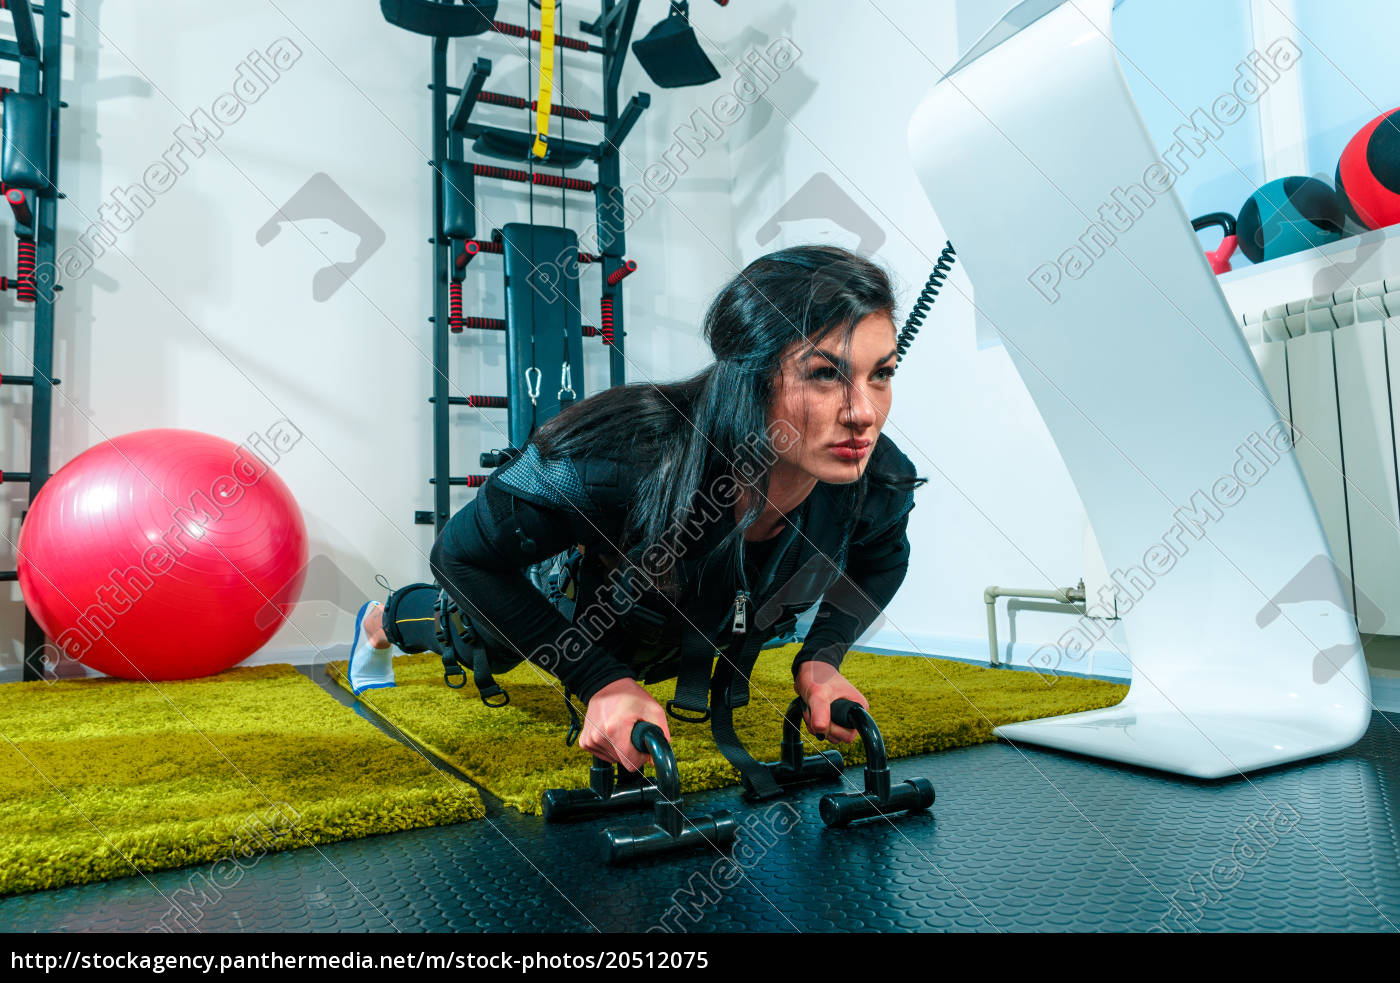 the, female, athlete, doing, they, exercise - 20512075